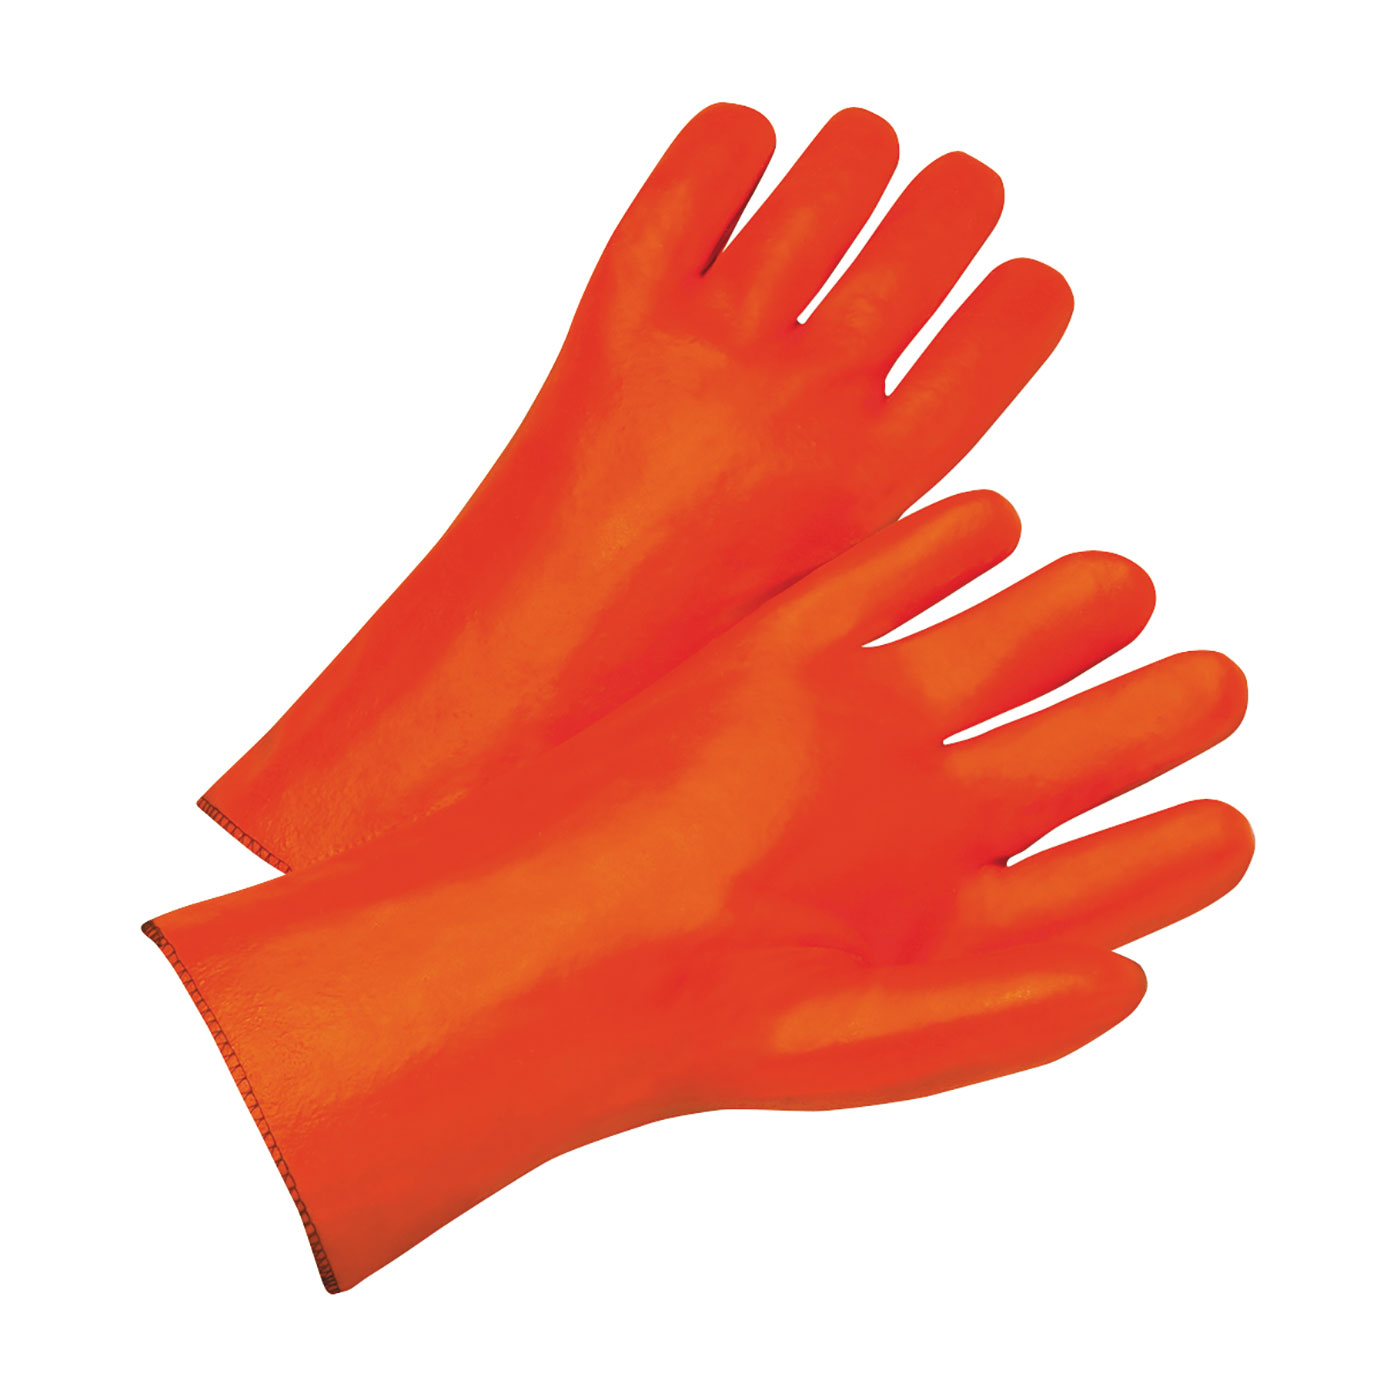 "PVC Dipped Glove with Foam Liner and Smooth Finish - 12"", Orange, L"